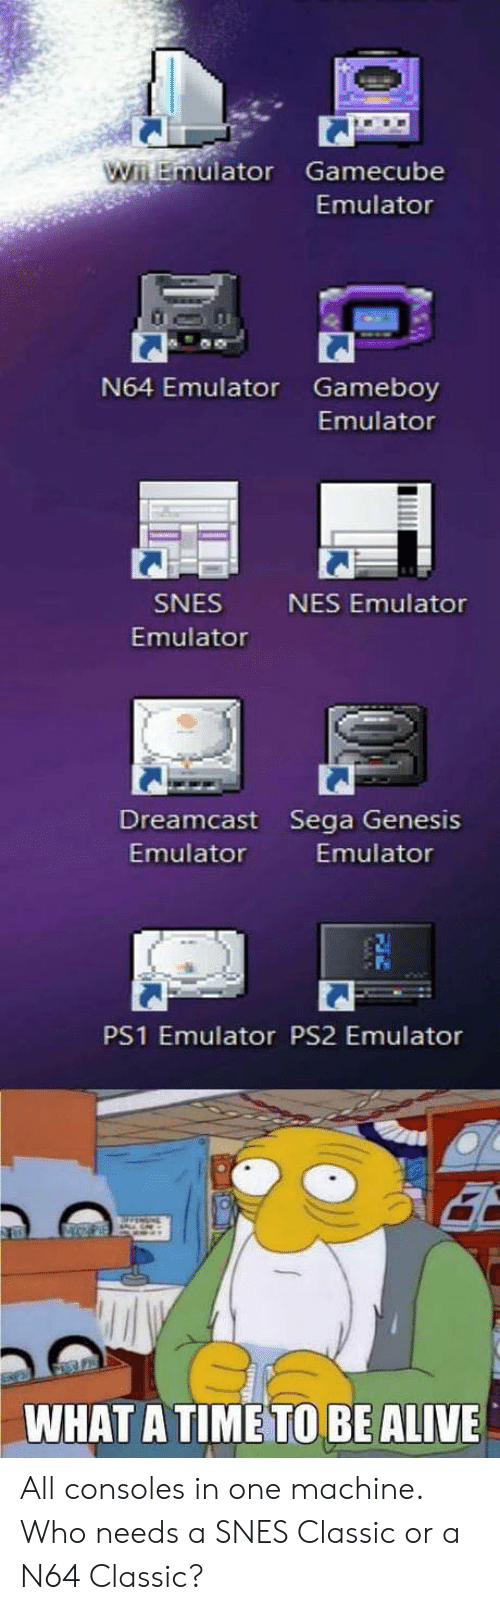 sega: uator Gamecube  Emulator  N64 Emulator Gameboy  Emulator  SNES  Emulator  NES Emulator  Dreamcast Sega Genesis  Emulator  Emulator  PS1 Emulator PS2 Emulator  WHAT A TIME TO BE ALIVE All consoles in one machine. Who needs a SNES Classic or a N64 Classic?